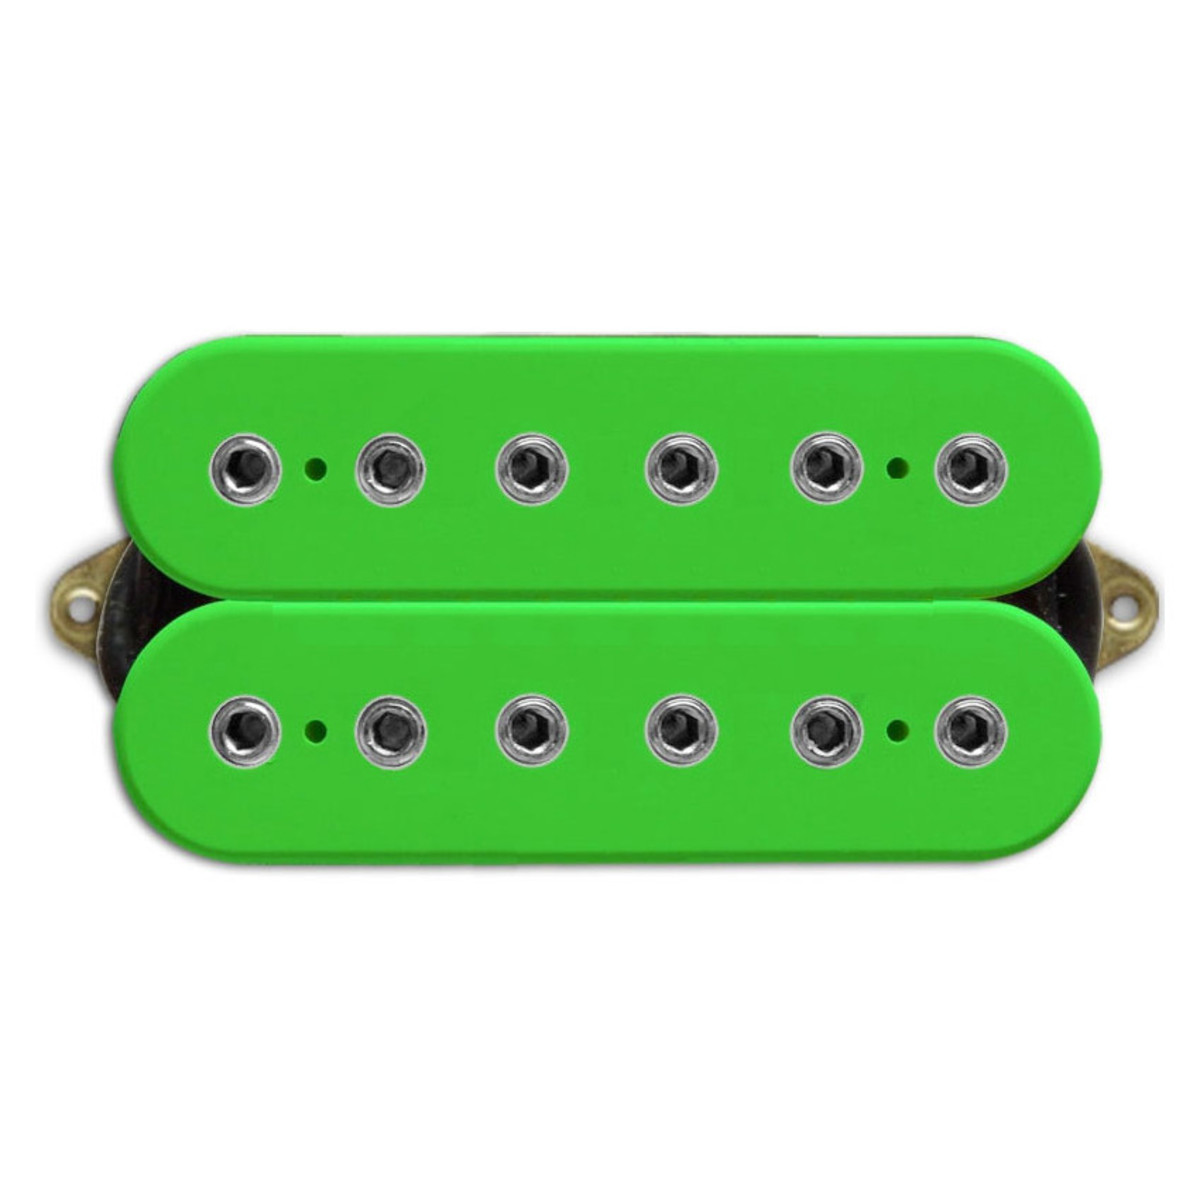 dimarzio dp151 paf pro f spaced humbucker guitar pickup green at. Black Bedroom Furniture Sets. Home Design Ideas